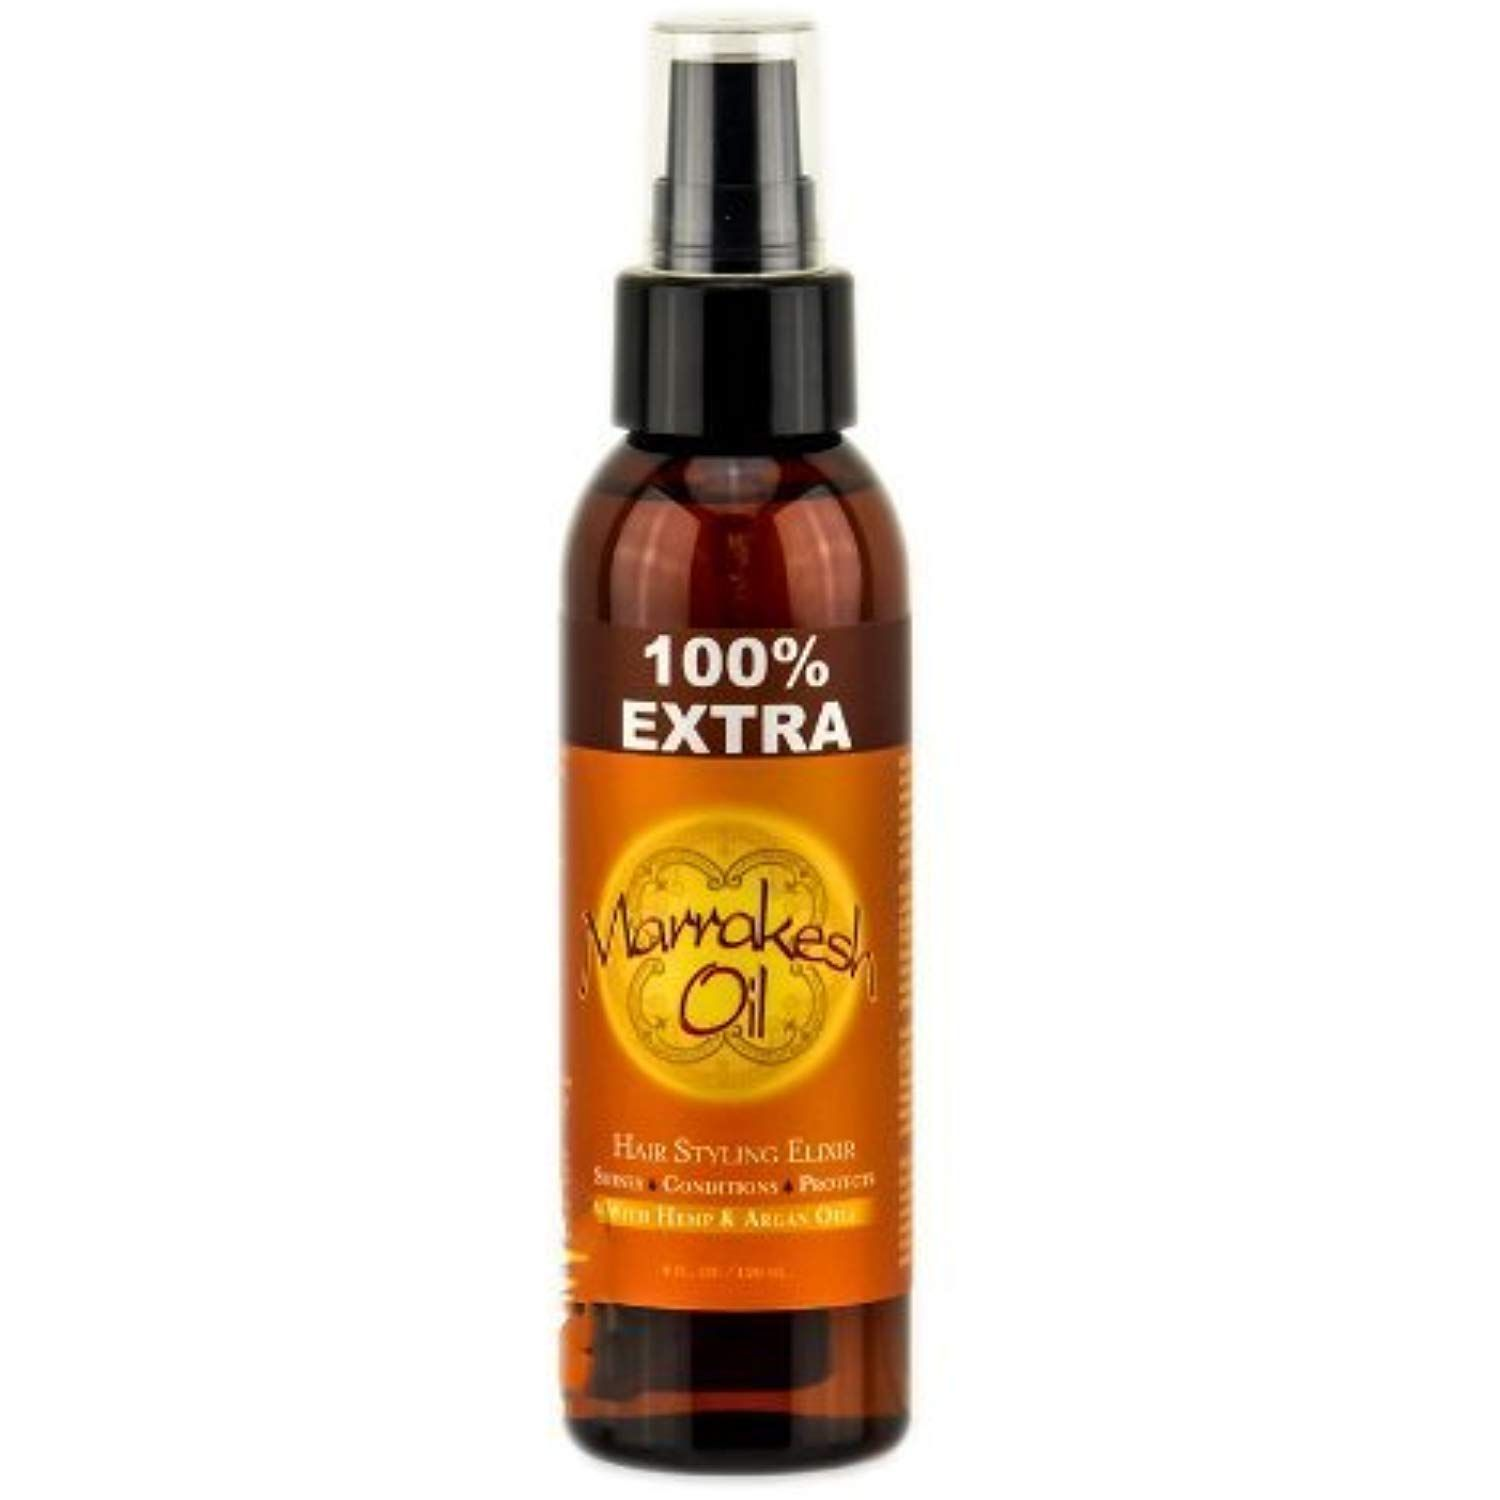 Earthly Body Marrakesh Oil Hair Styling Elixir 4 Oz Read More At The Image Link This Is An Affiliate Link Personalcare Hair Oil Body Oils